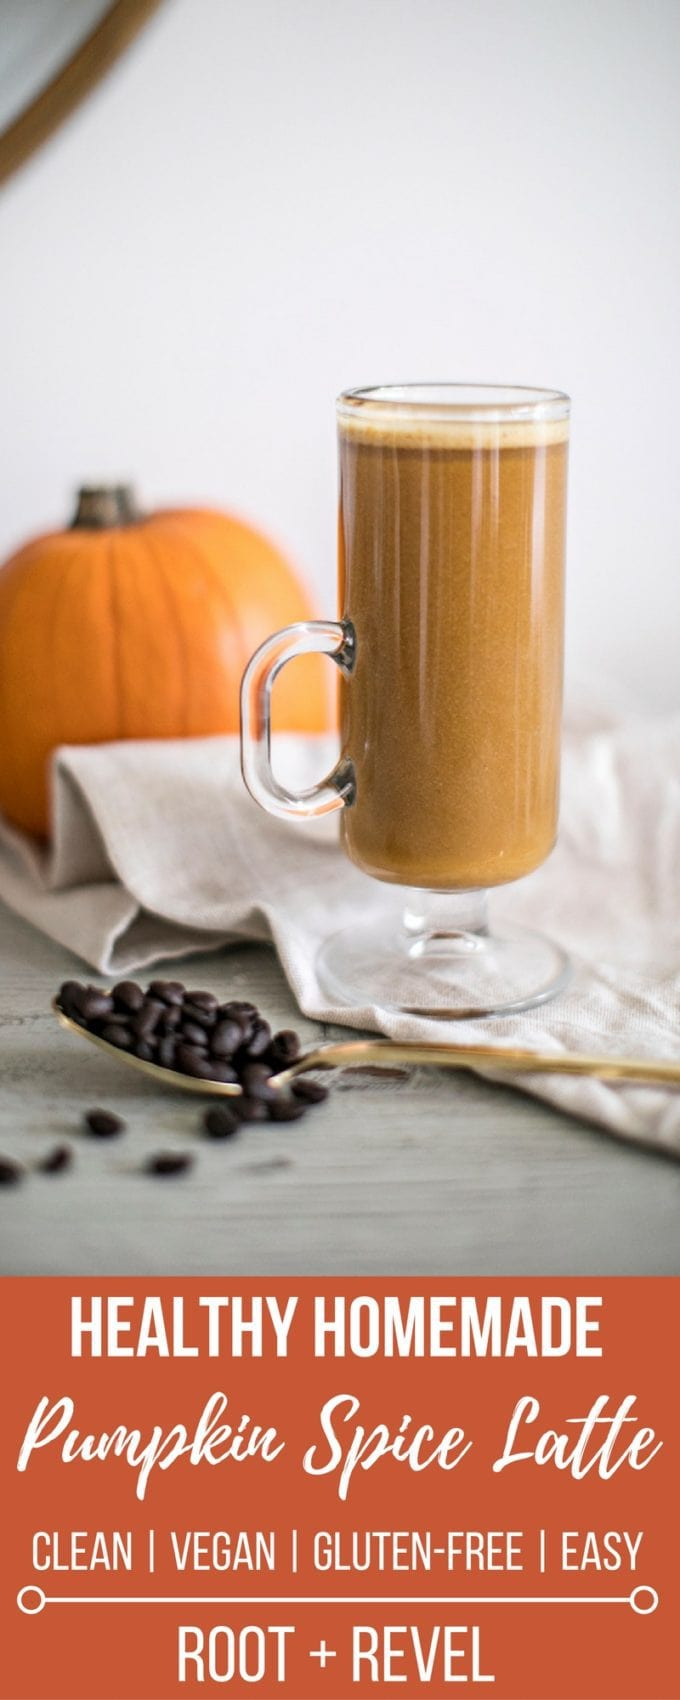 Homemade Pumpkin E Latte Vegan Gf